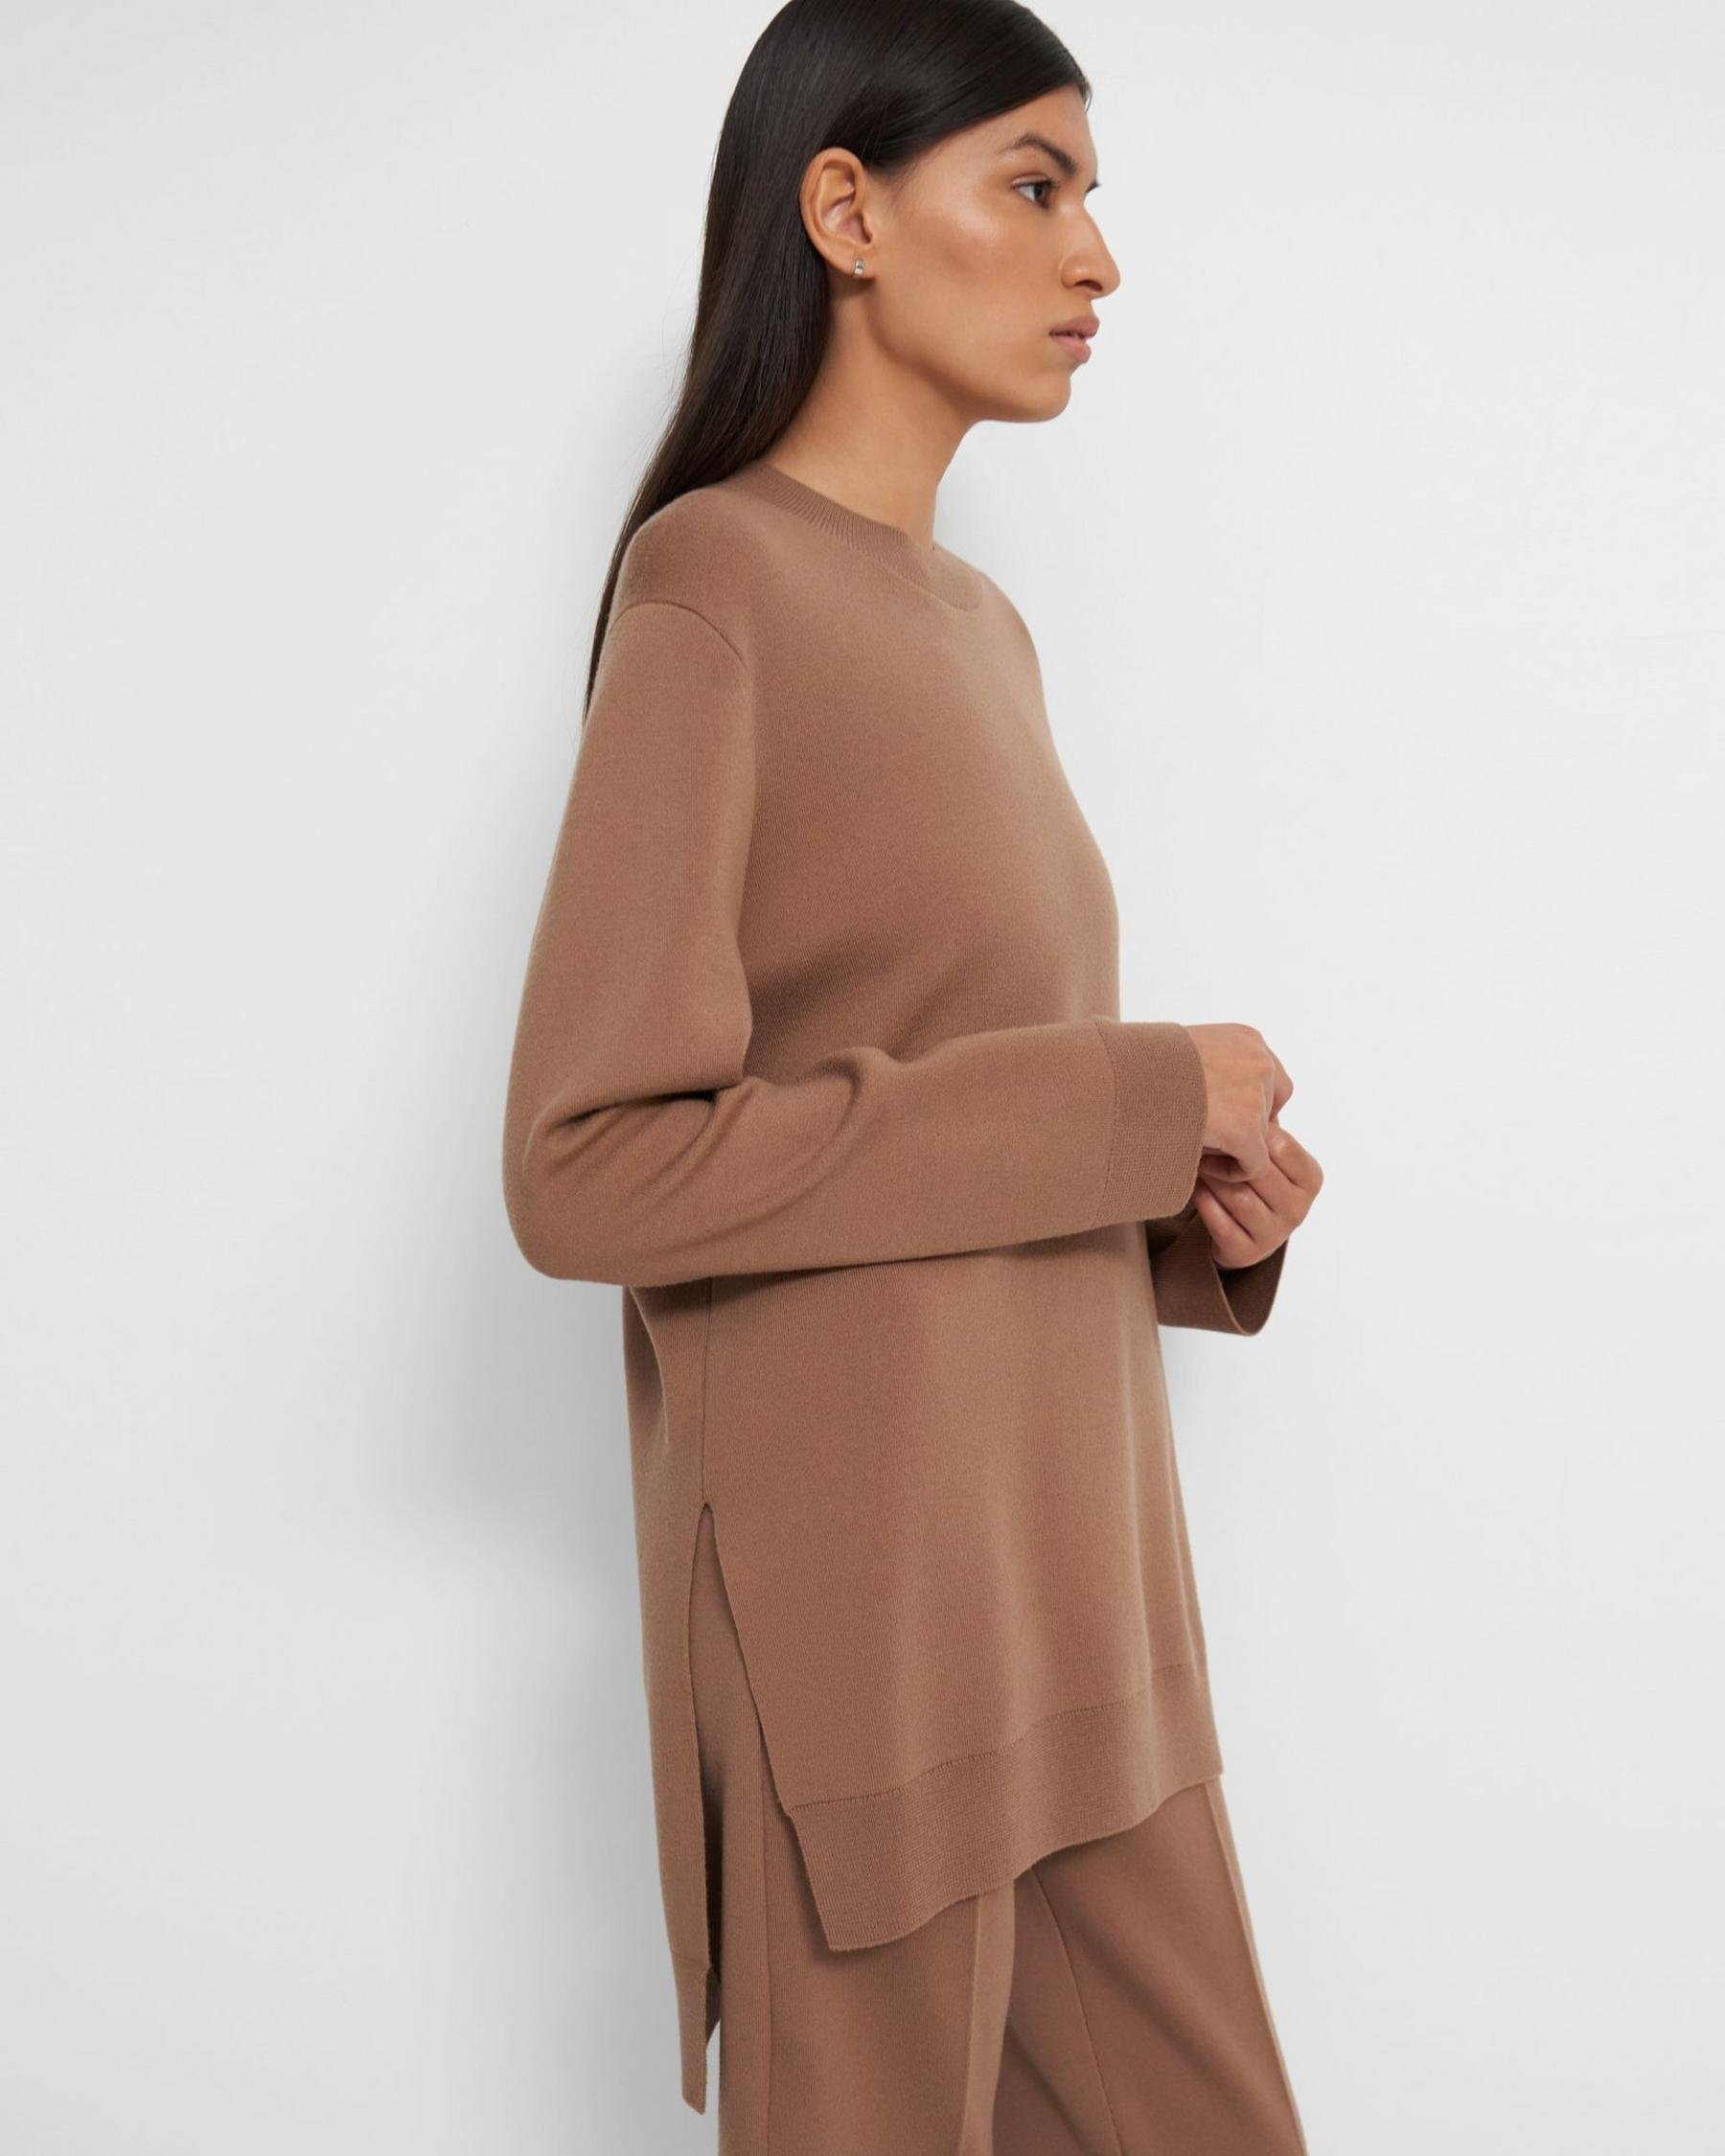 Knit Tunic in Empire Wool